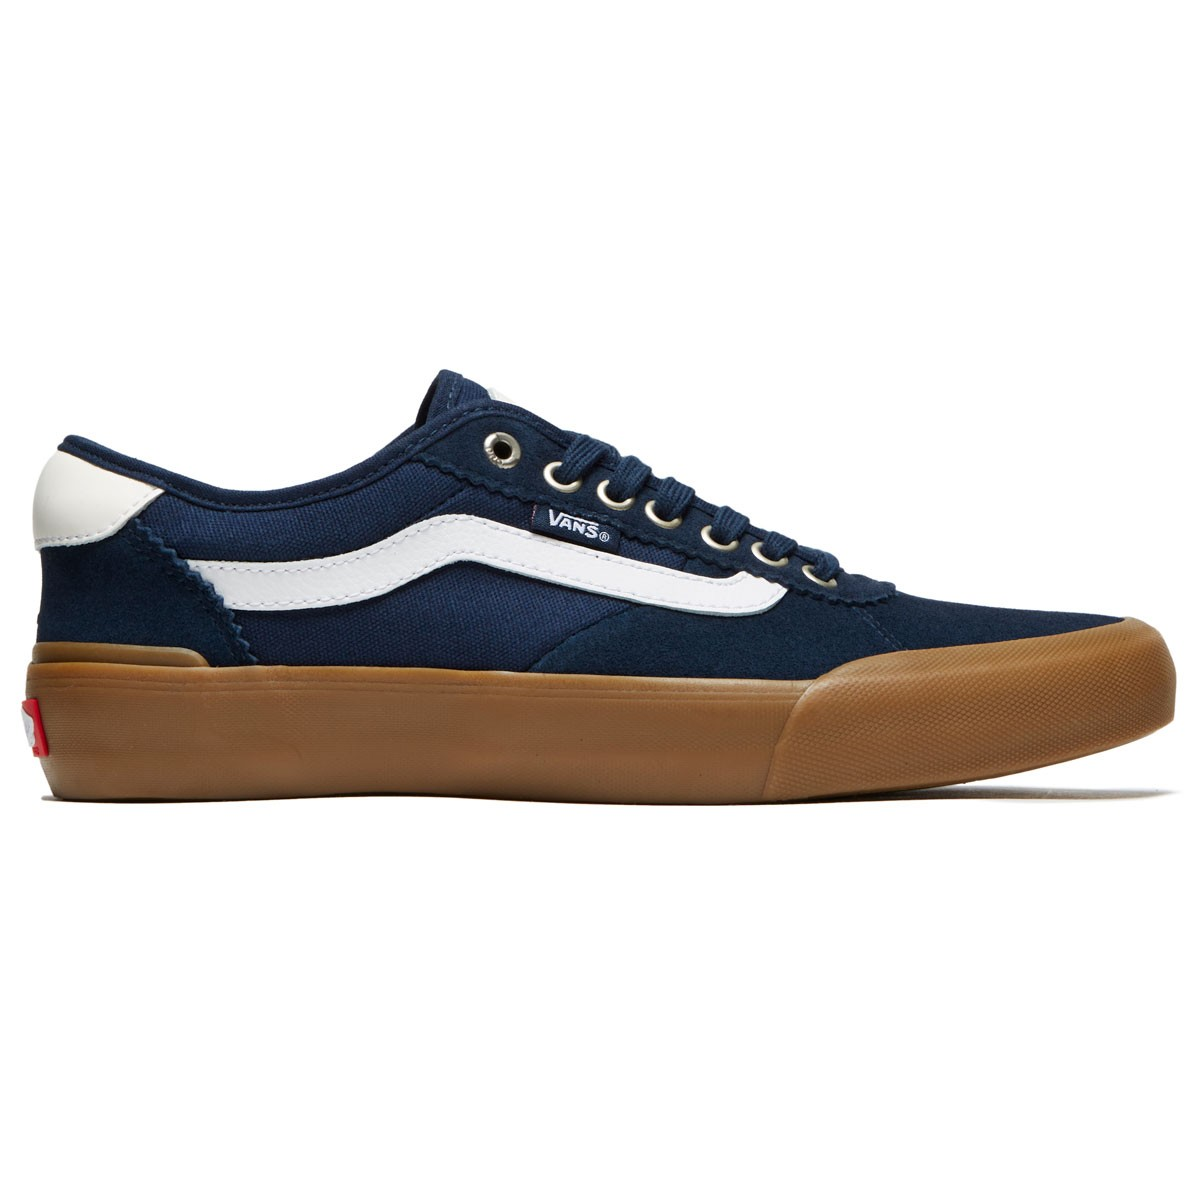 Vans Chima Pro 2 Shoes eb1a2fe22